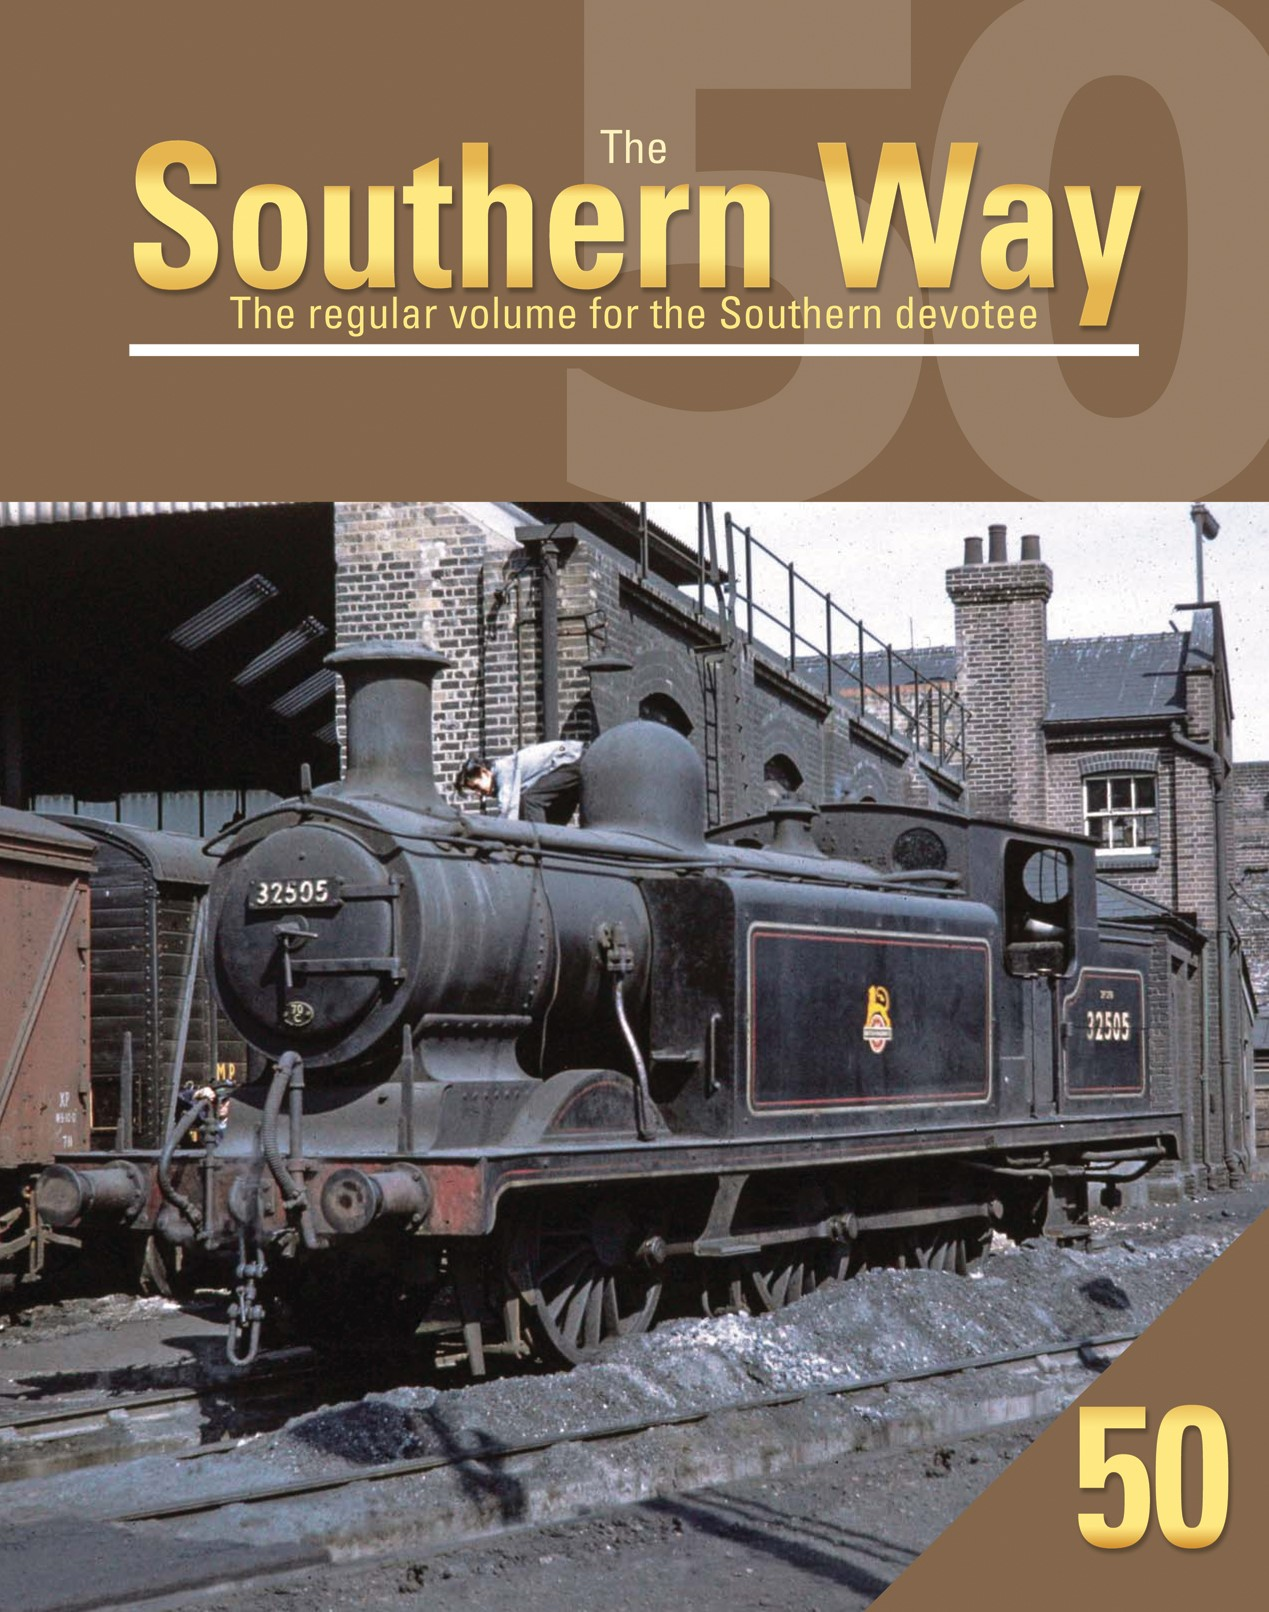 The Southern Way 50